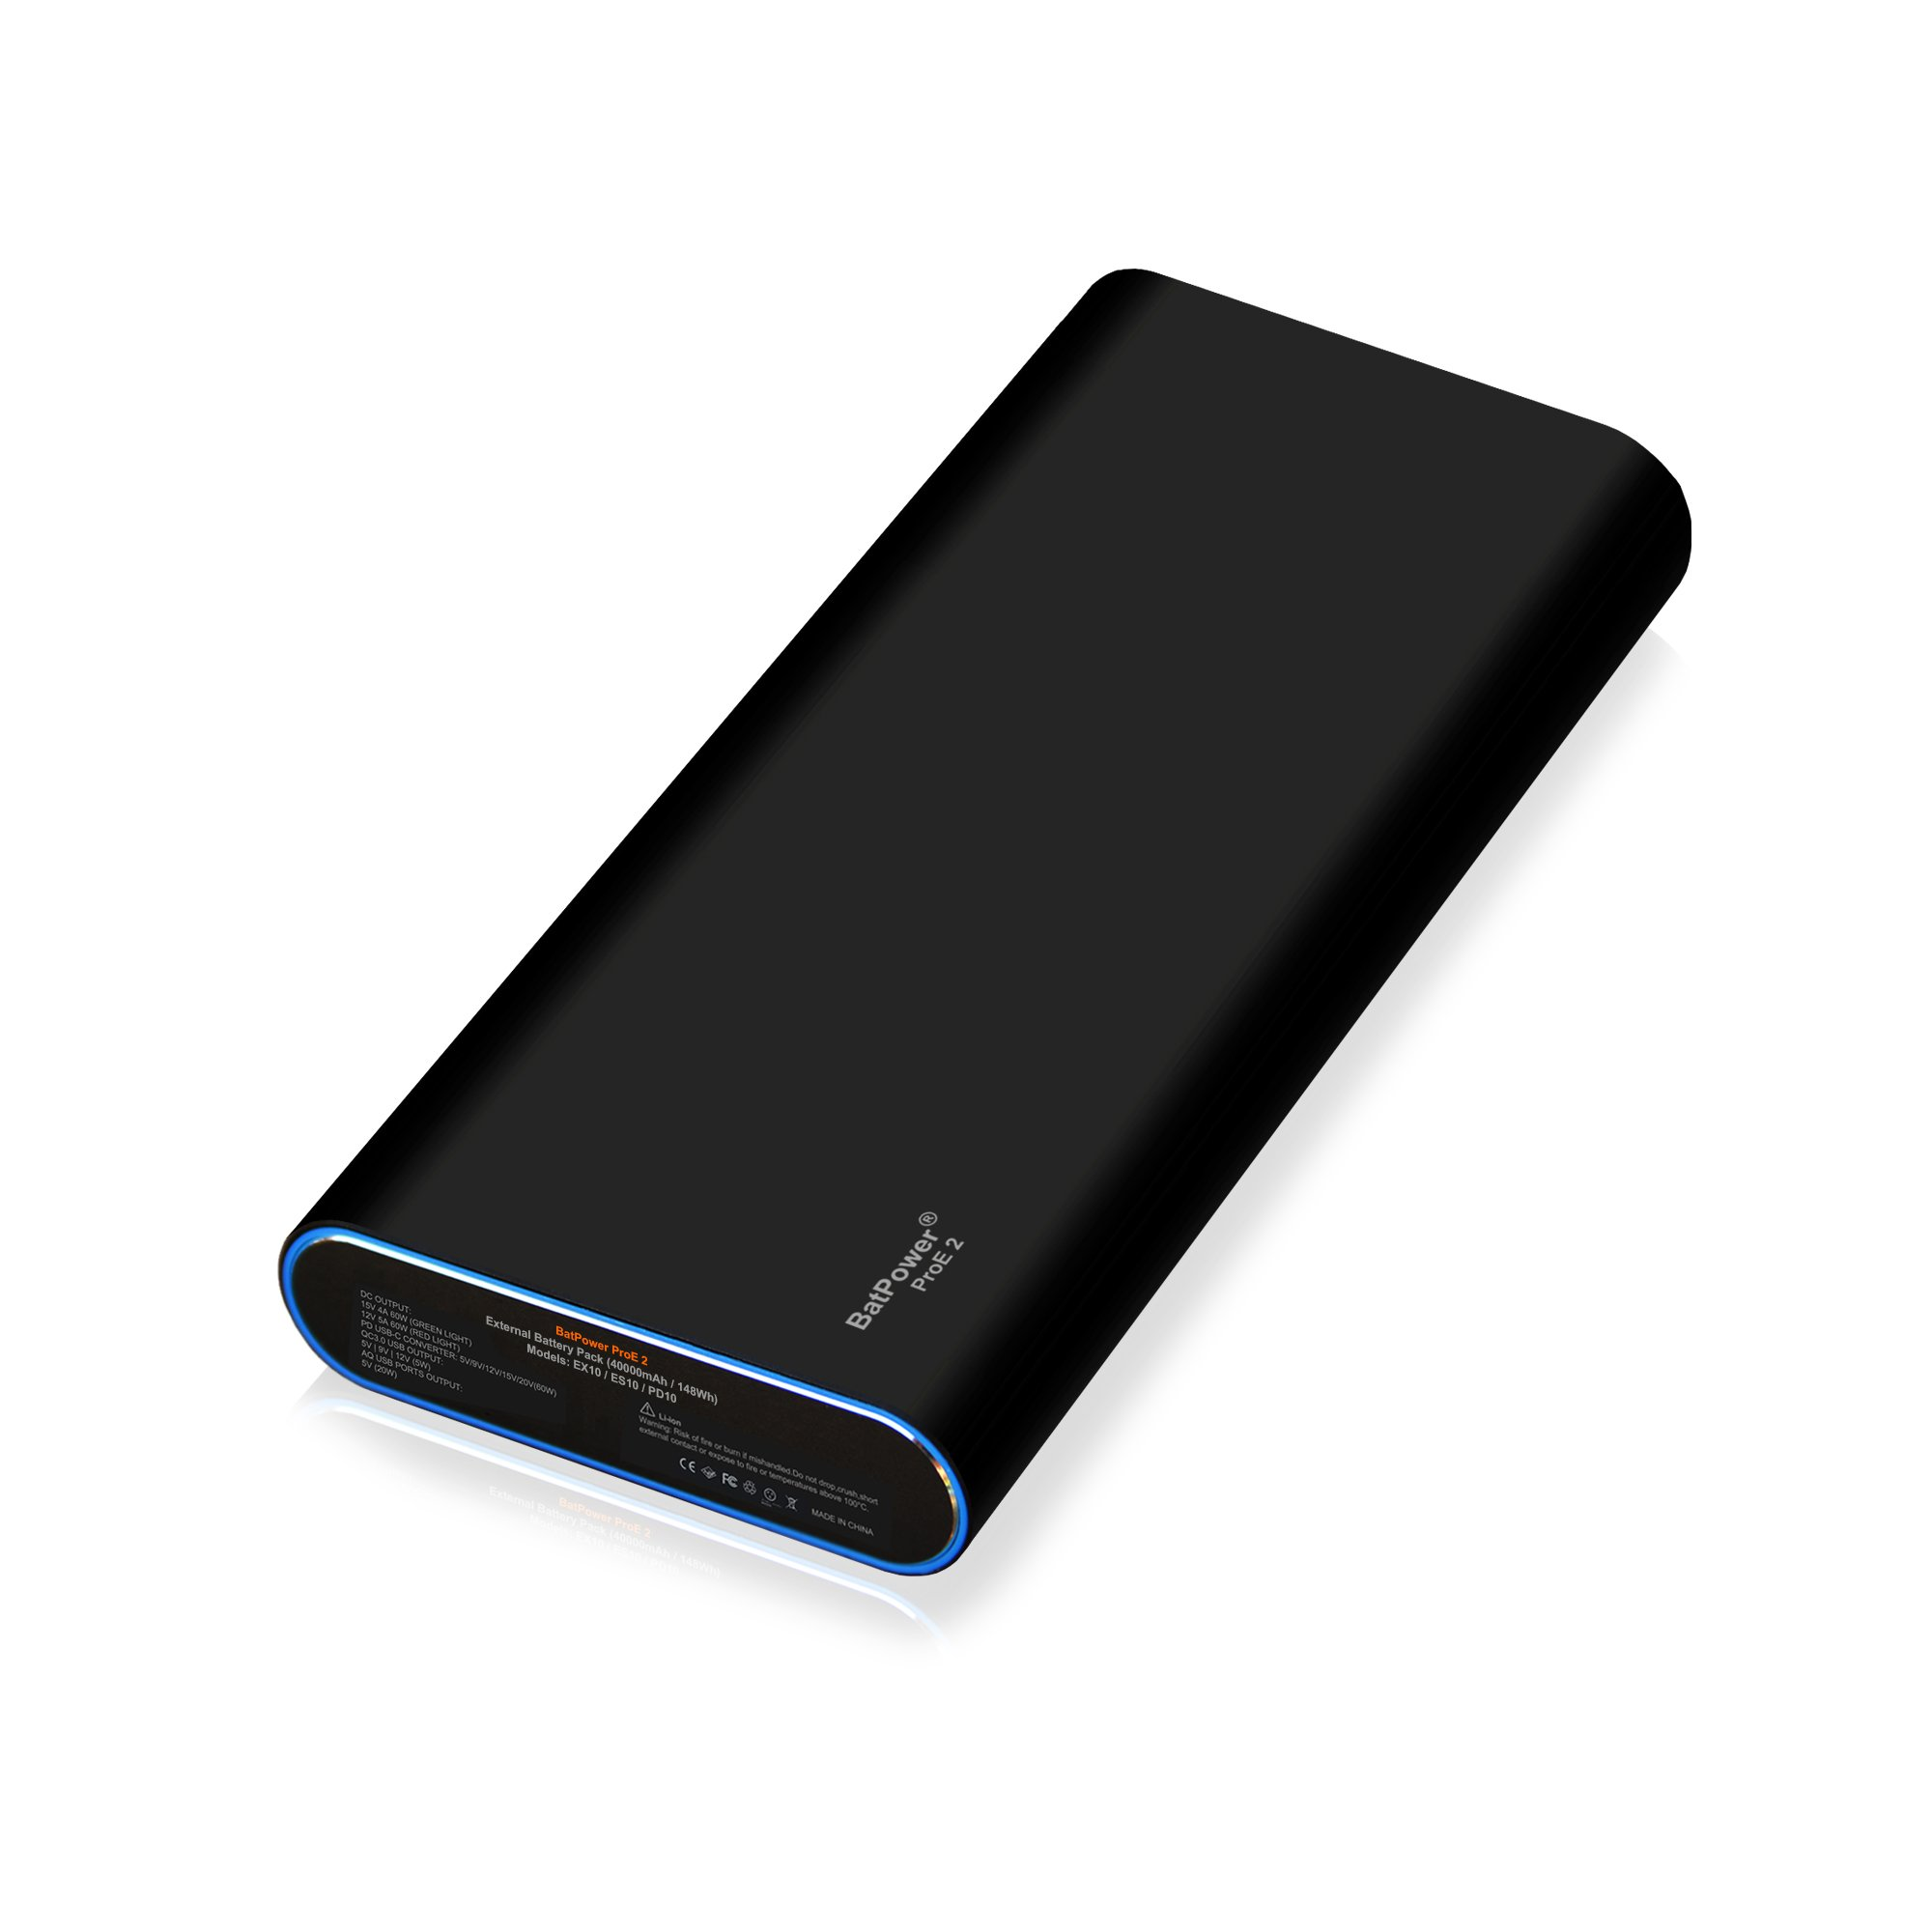 BatPower ProE 2 ES10 Portable Charger External Battery Power Bank for Surface Laptop, Surface Book, Book 2, Surface Pro 4 / 3 / 2 and RT, USB QC 3.0 Fast Charging for Tablet or Smartphone -148Wh by BatPower (Image #10)